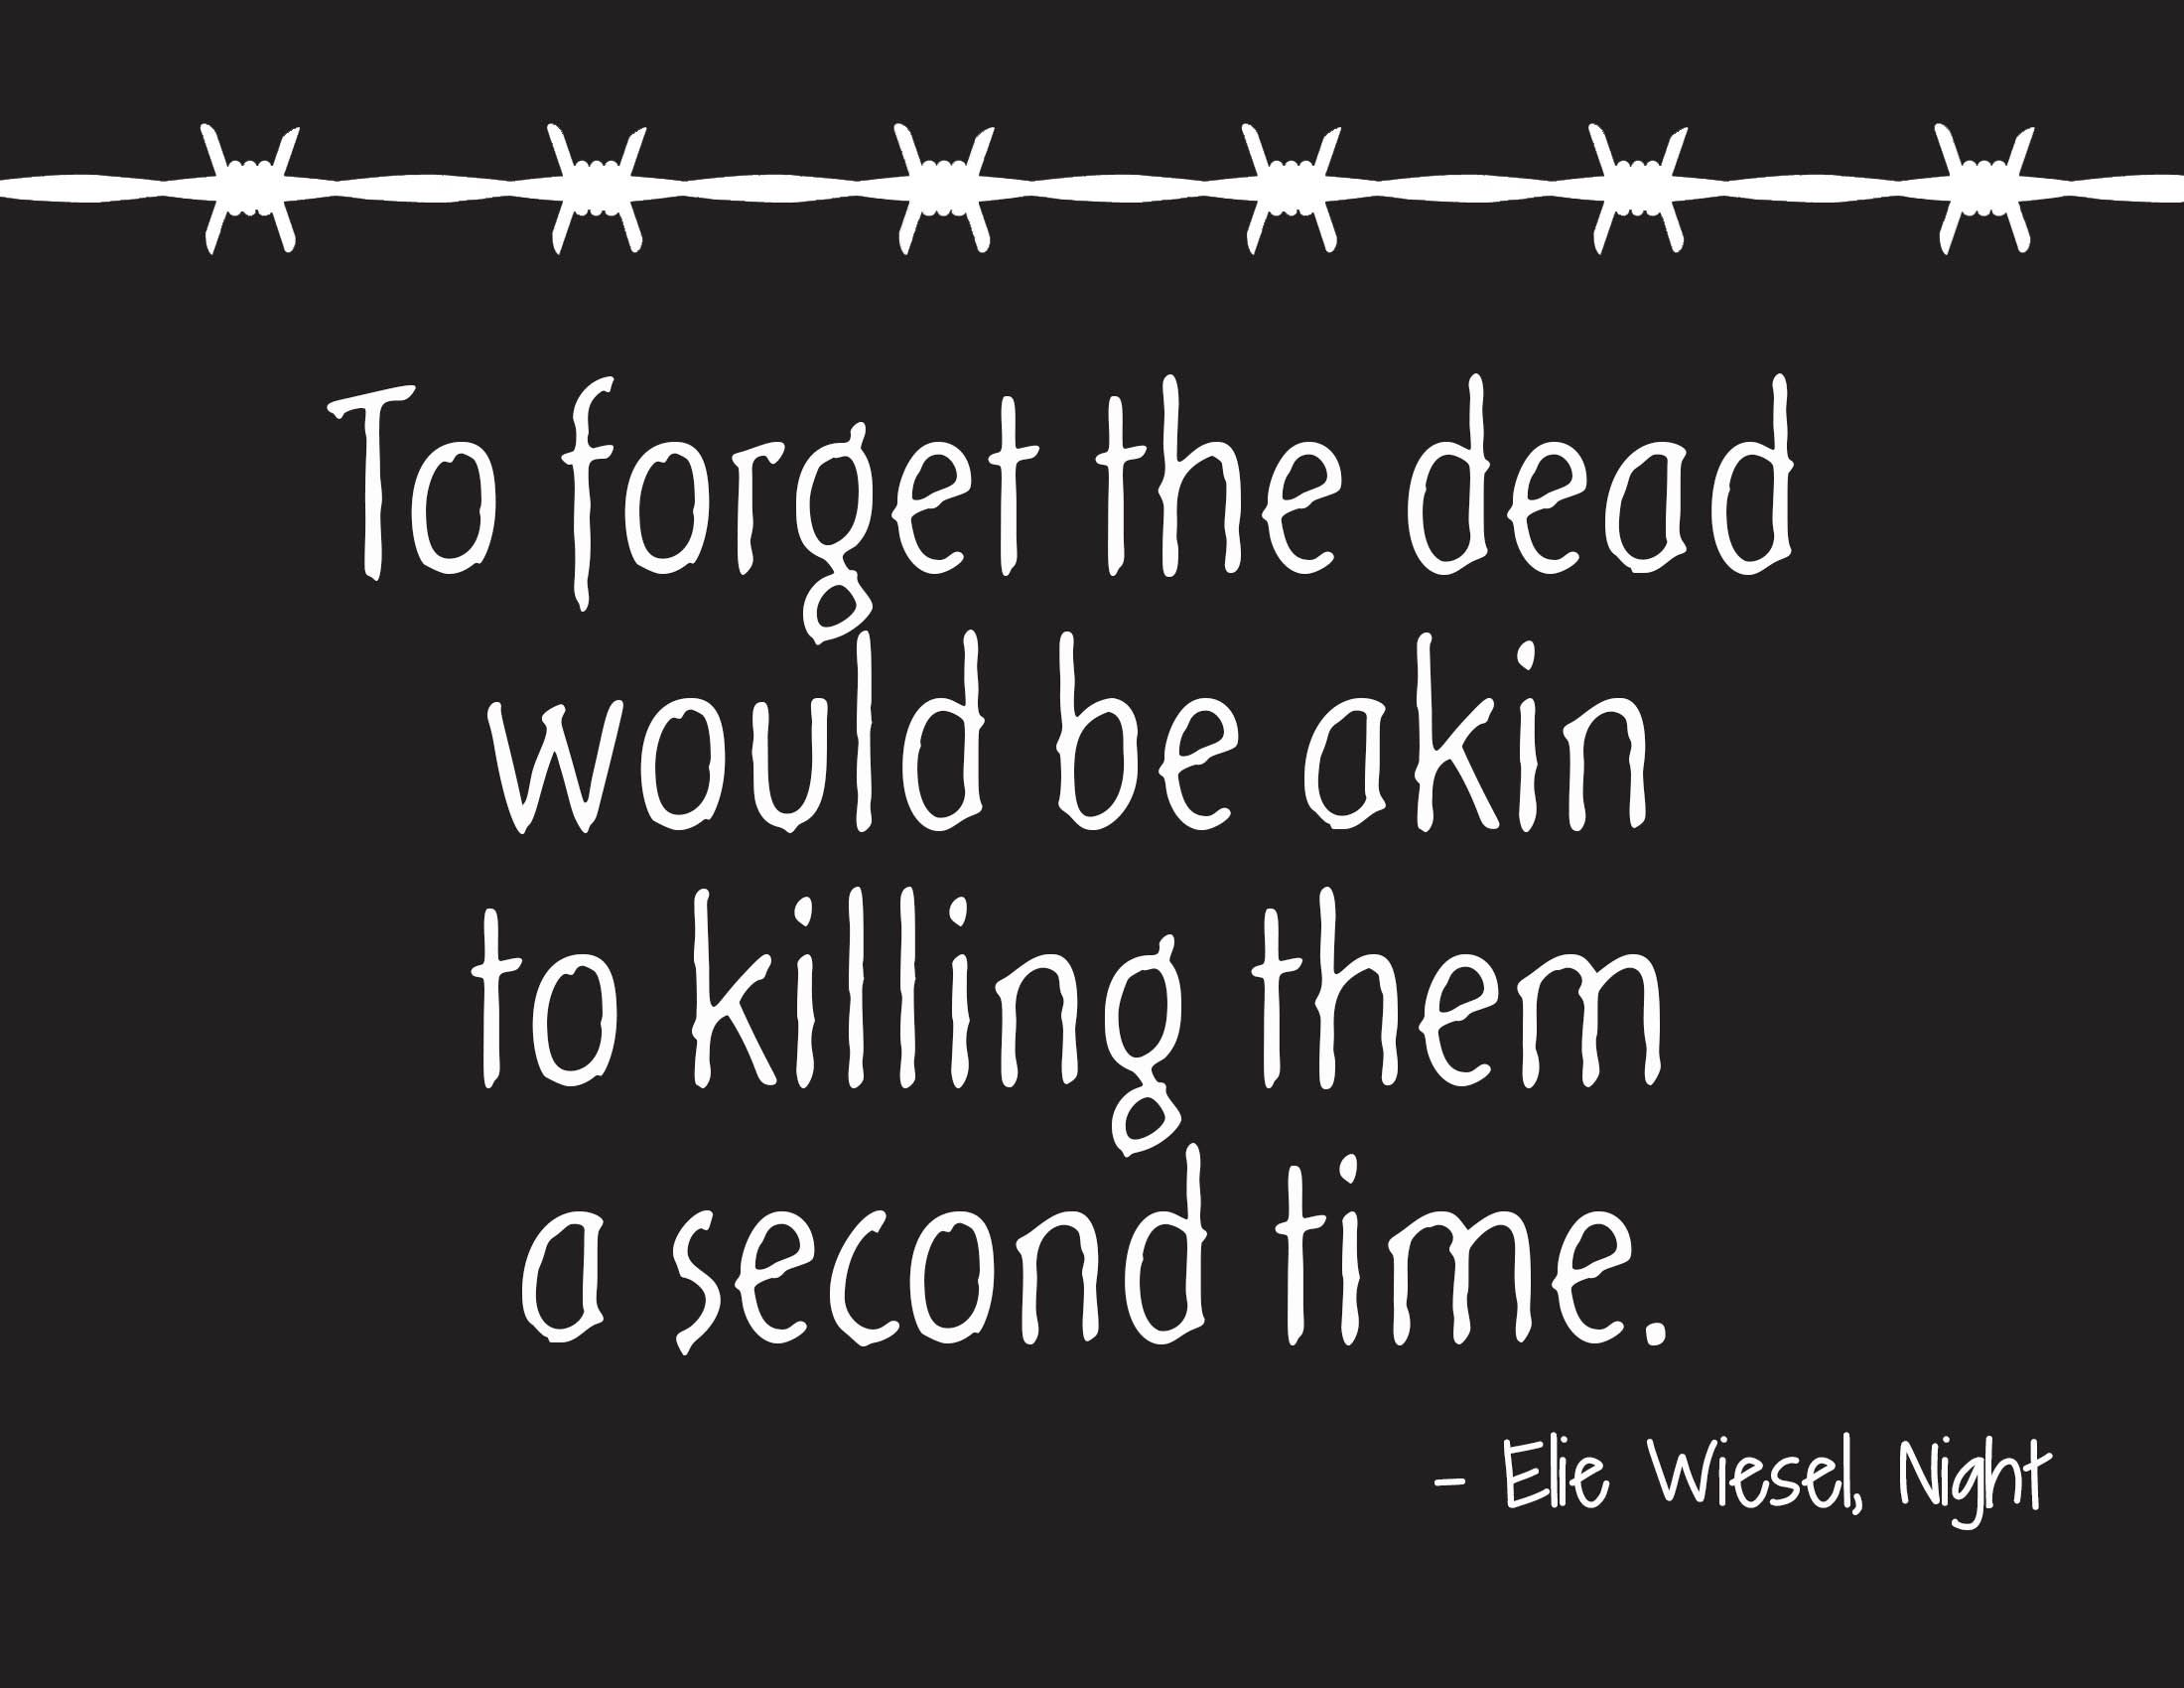 Night By Elie Wiesel Quotes With Page Numbers | Quotes From Night By Elie Wiesel Google Search Book Quotes